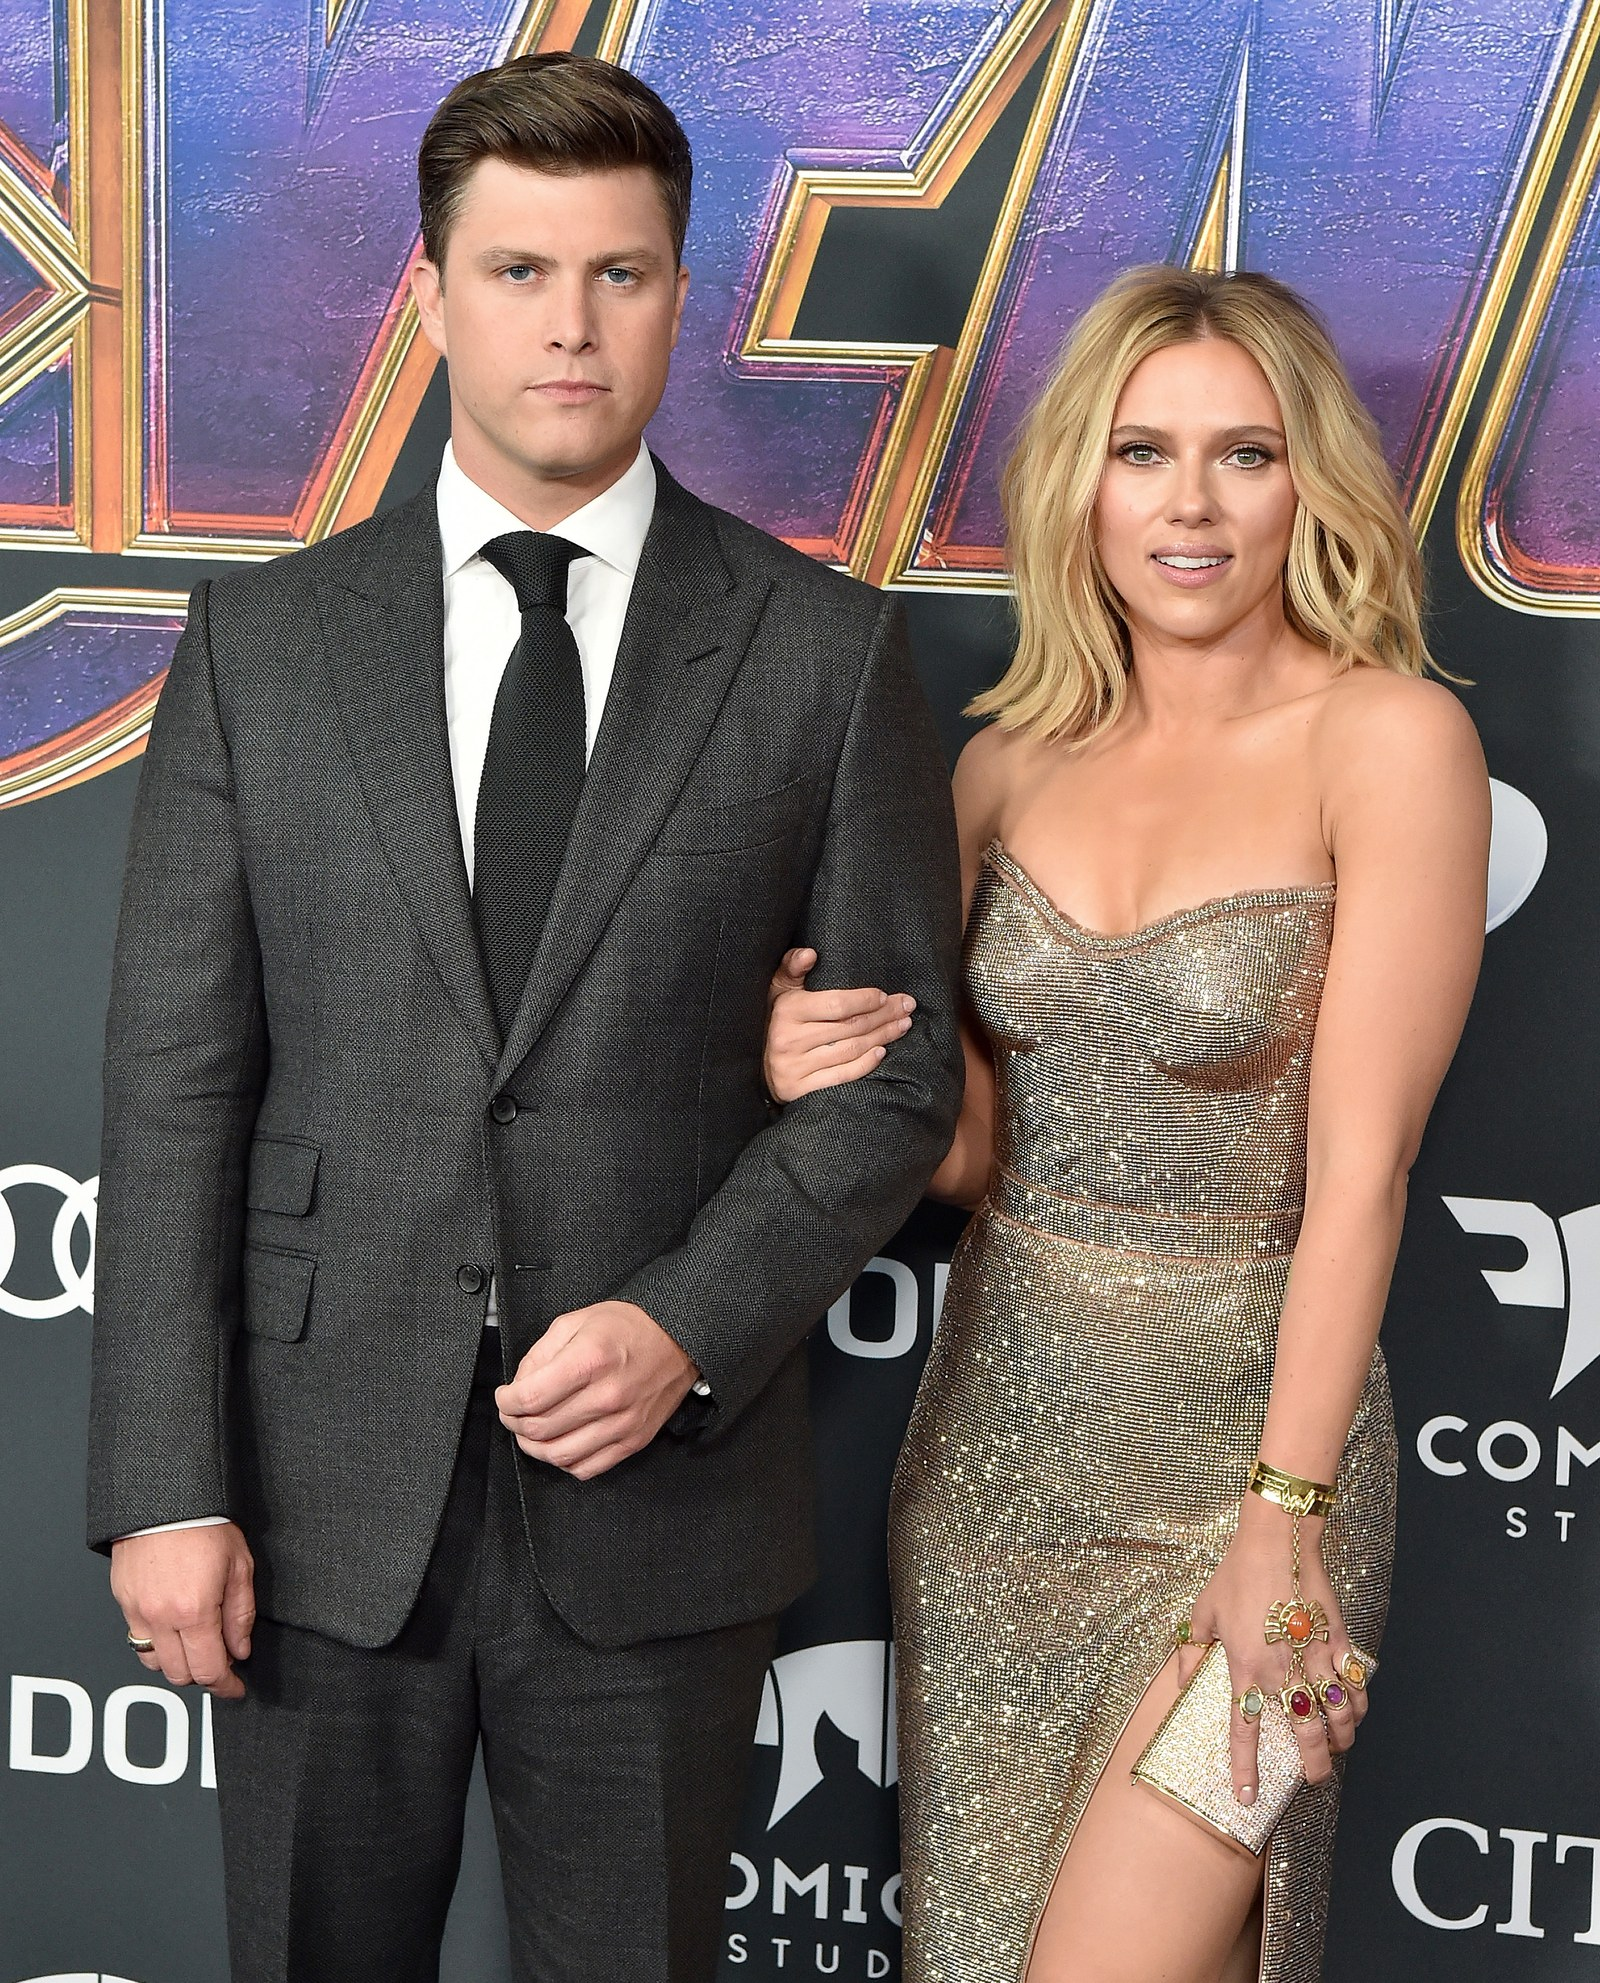 Colin Jost and Scarlett Johansson at the Avengers Endgame premiere in 2019.